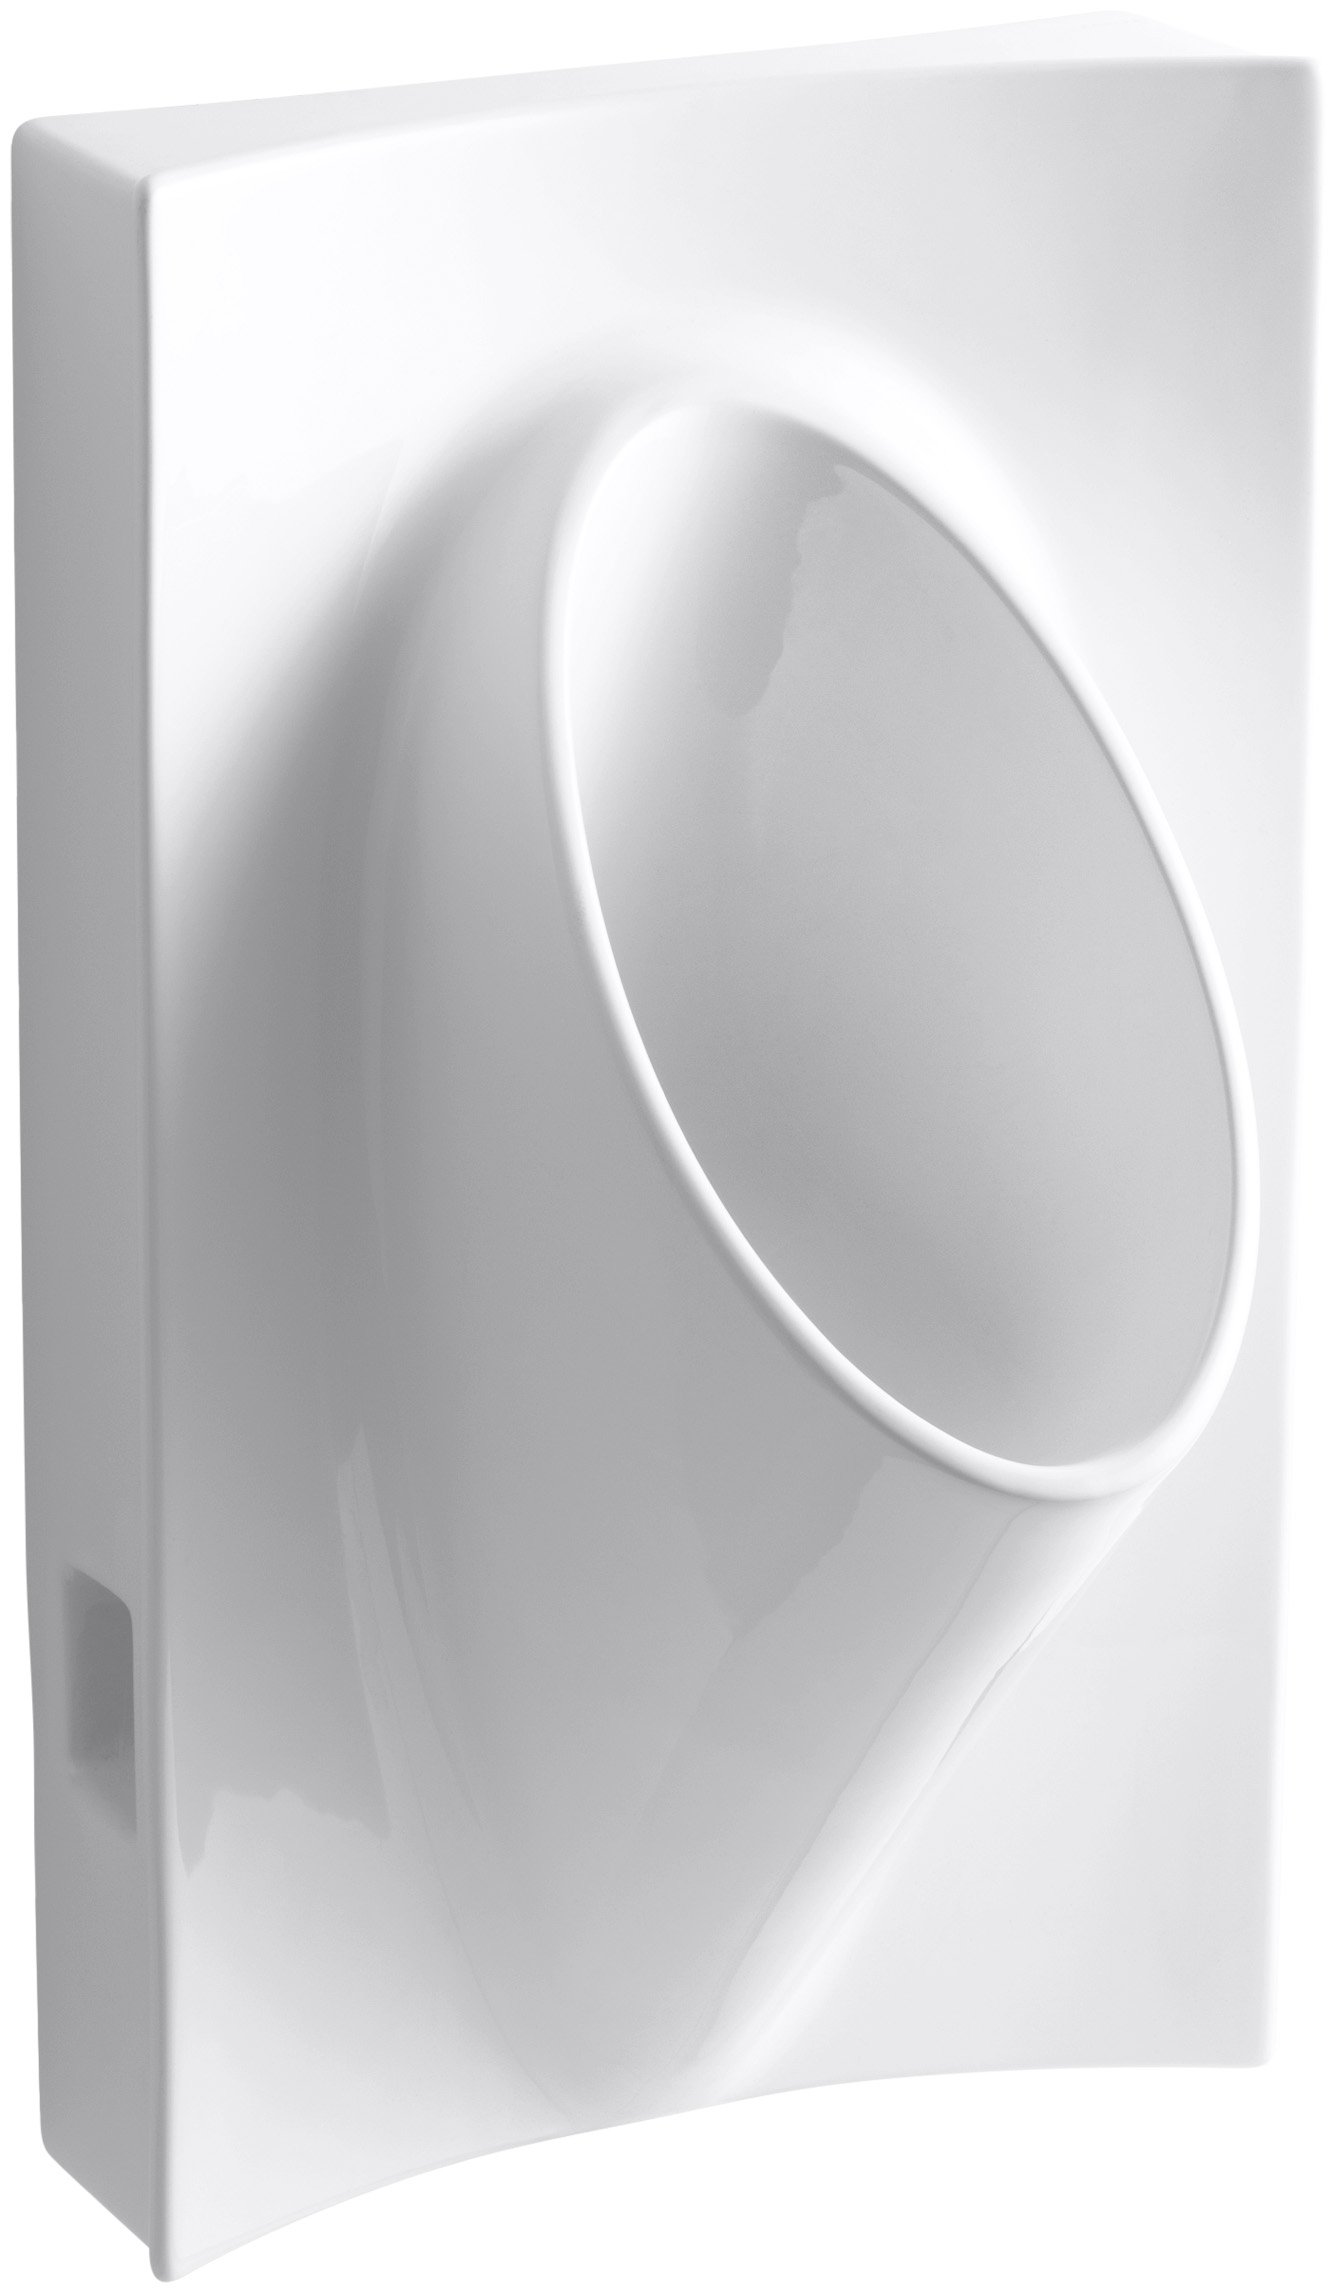 Kohler K-4919-0 Steward L Waterless Urinal, White